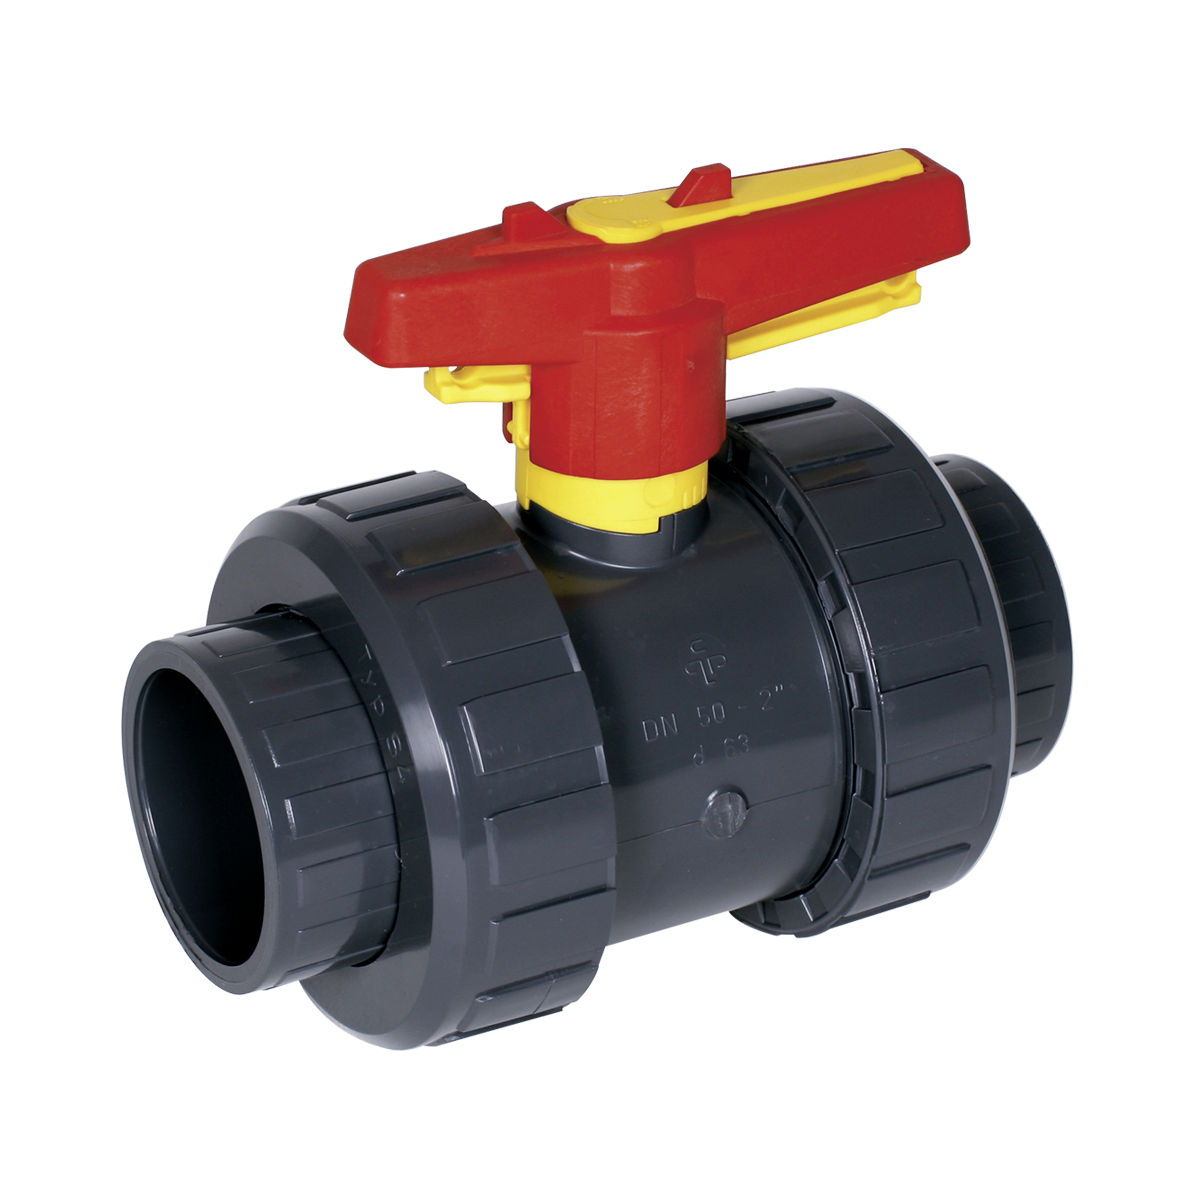 Praher 2-way ball valve S4 PVC, grey, red and yellow